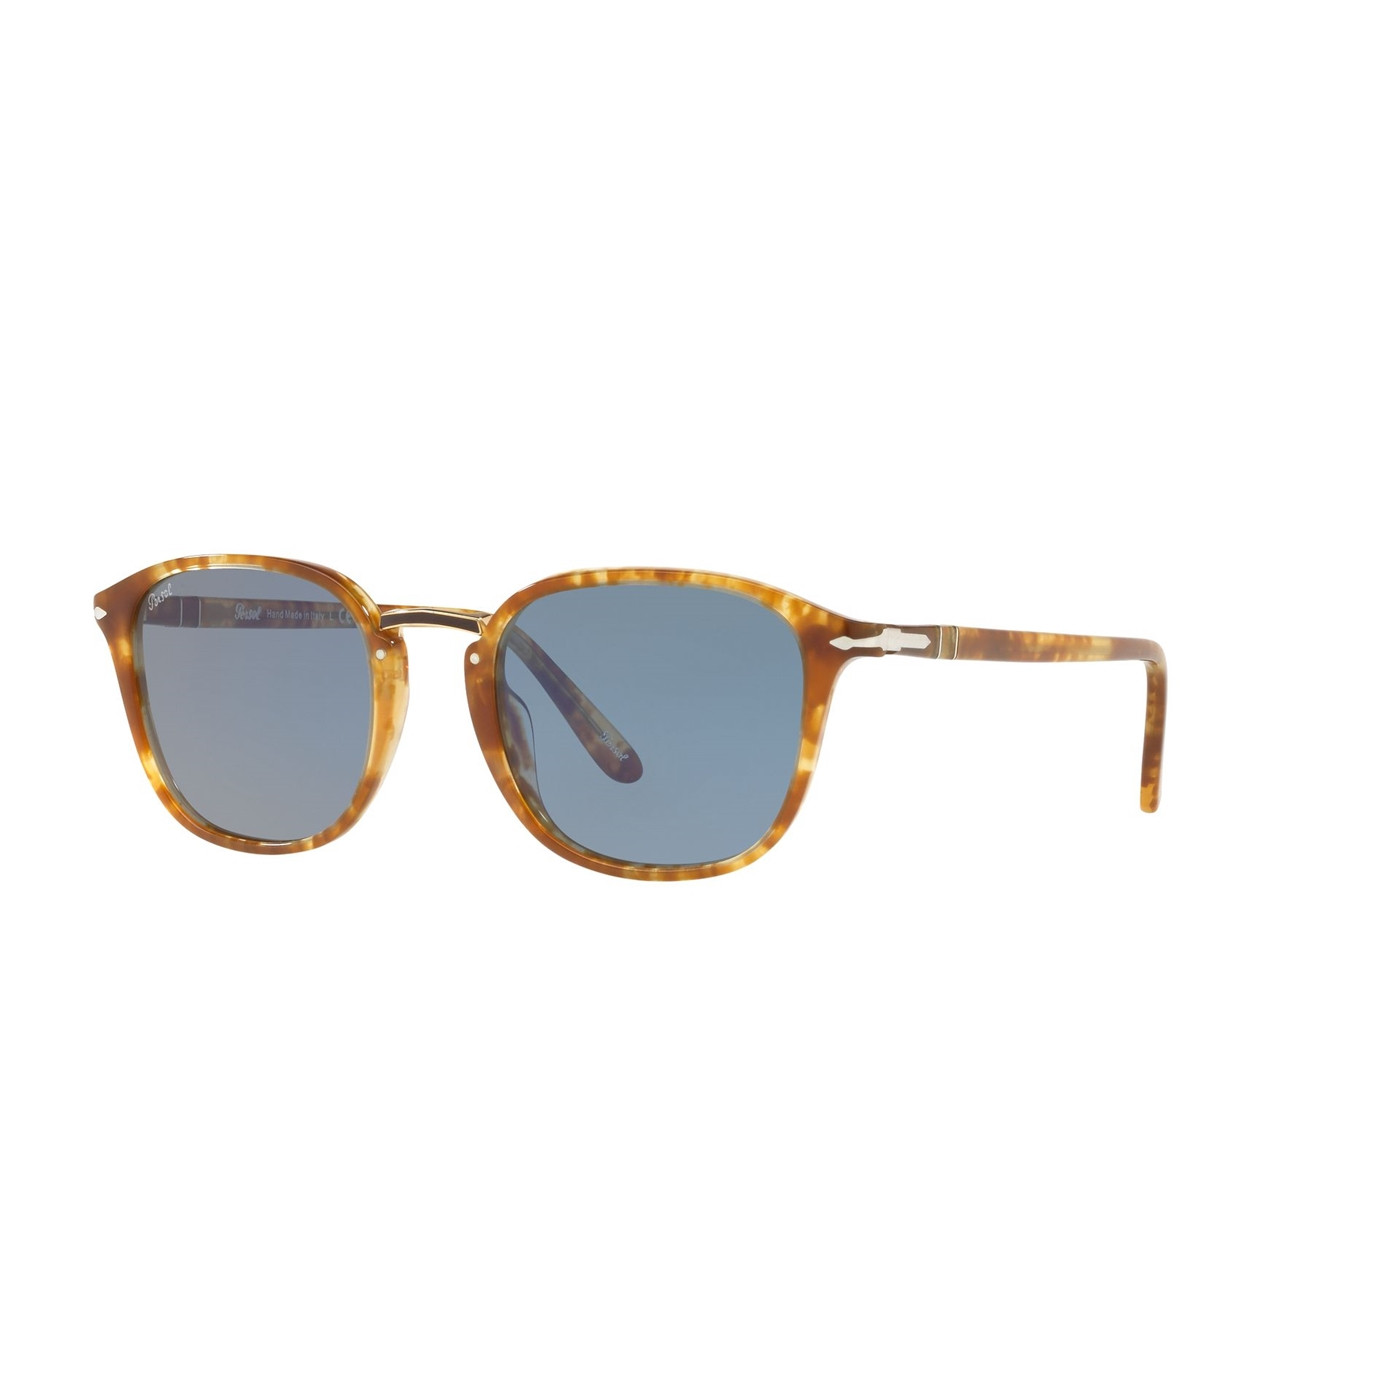 Persol Spotted Brown Beige Zonnebril PO3186S10645651